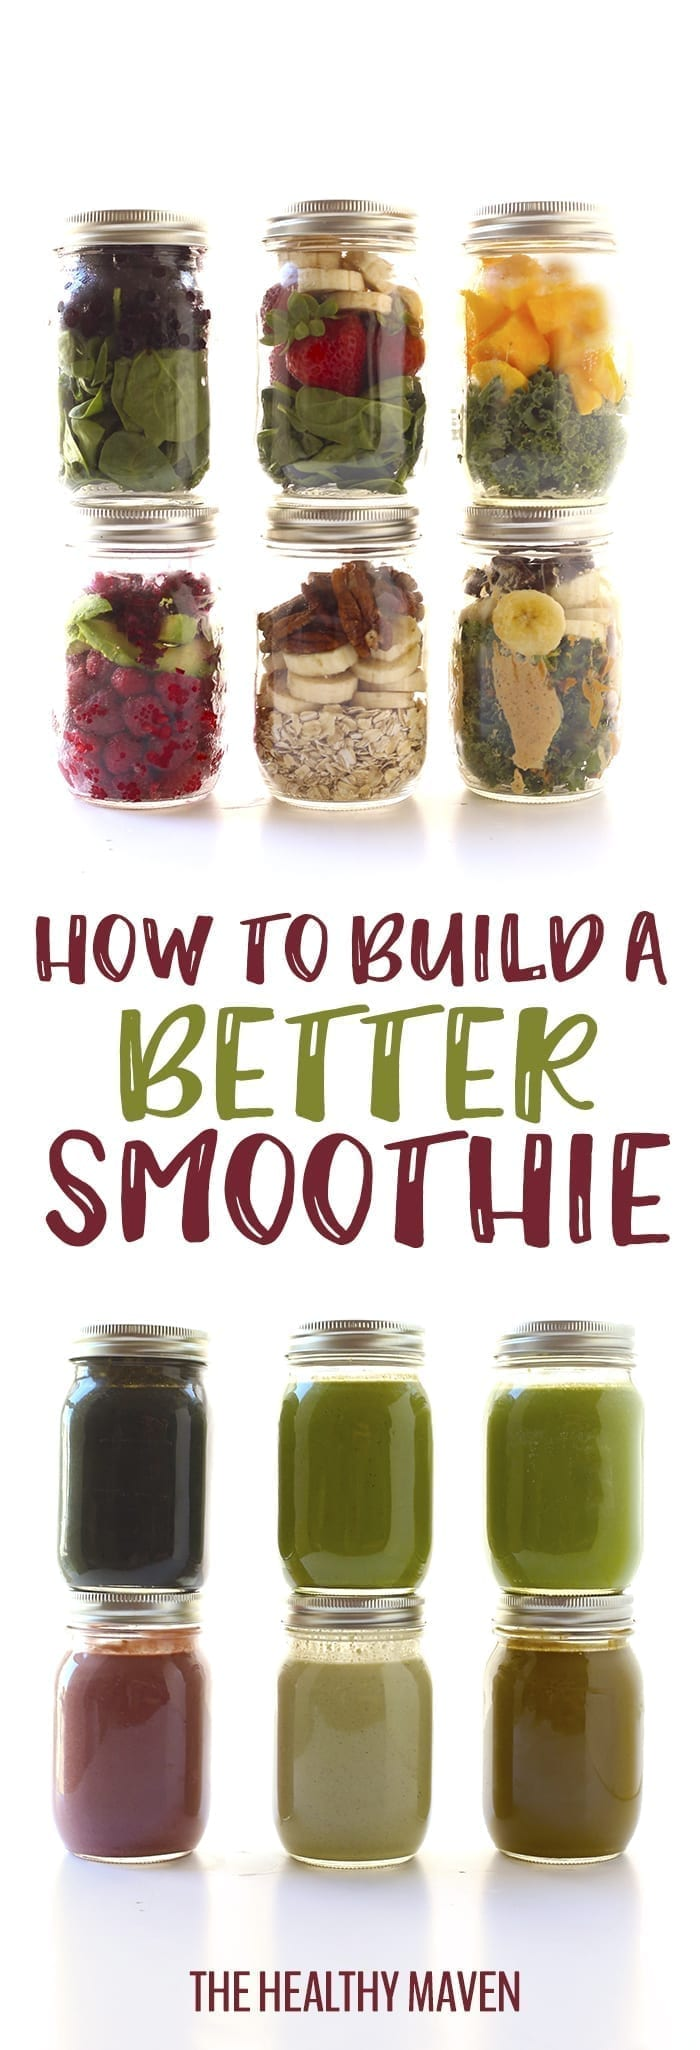 Whether you're new to smoothies or an experienced blender, this post will teach you how to build a better smoothie to add more nutrition, delicious flavor and added sustenance to your breakfast game.